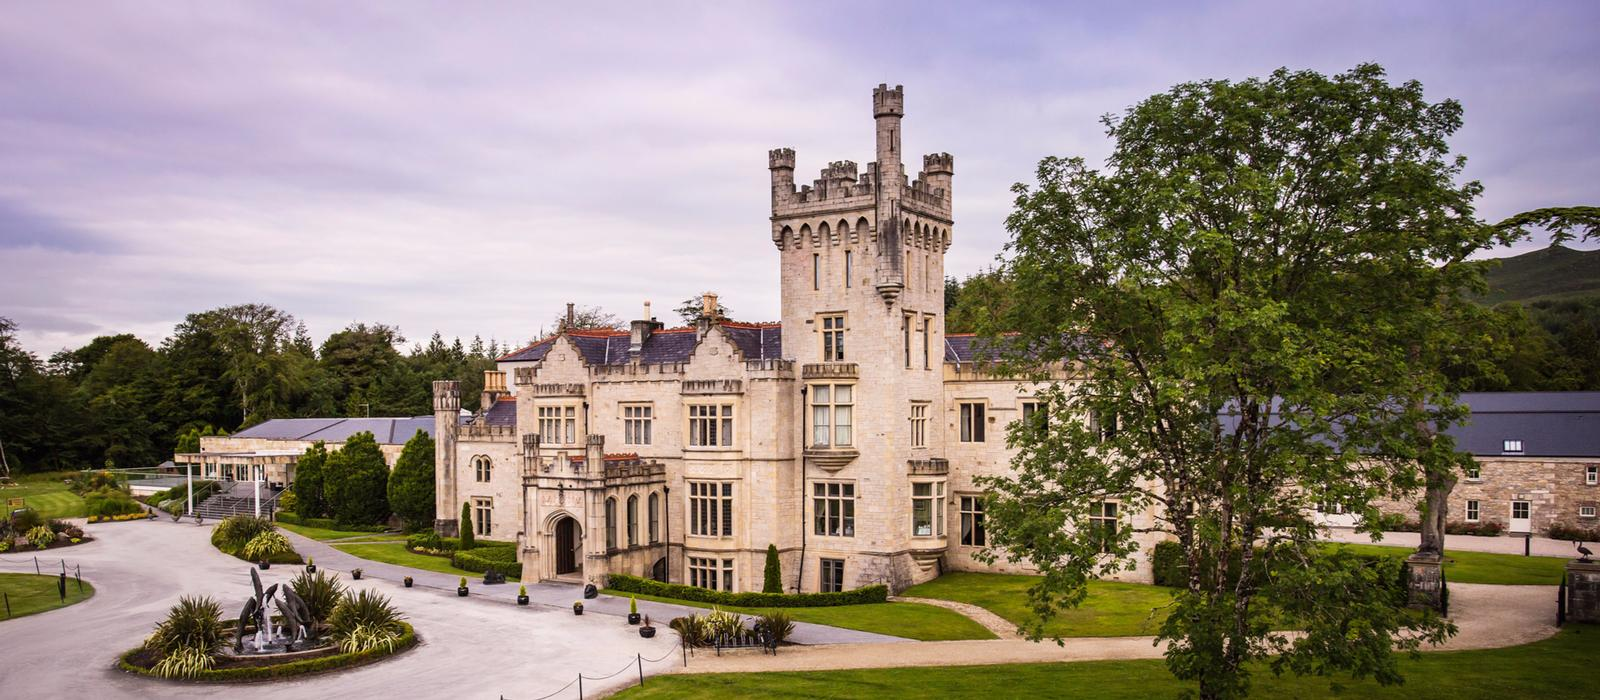 careers in Lough Eske Castle